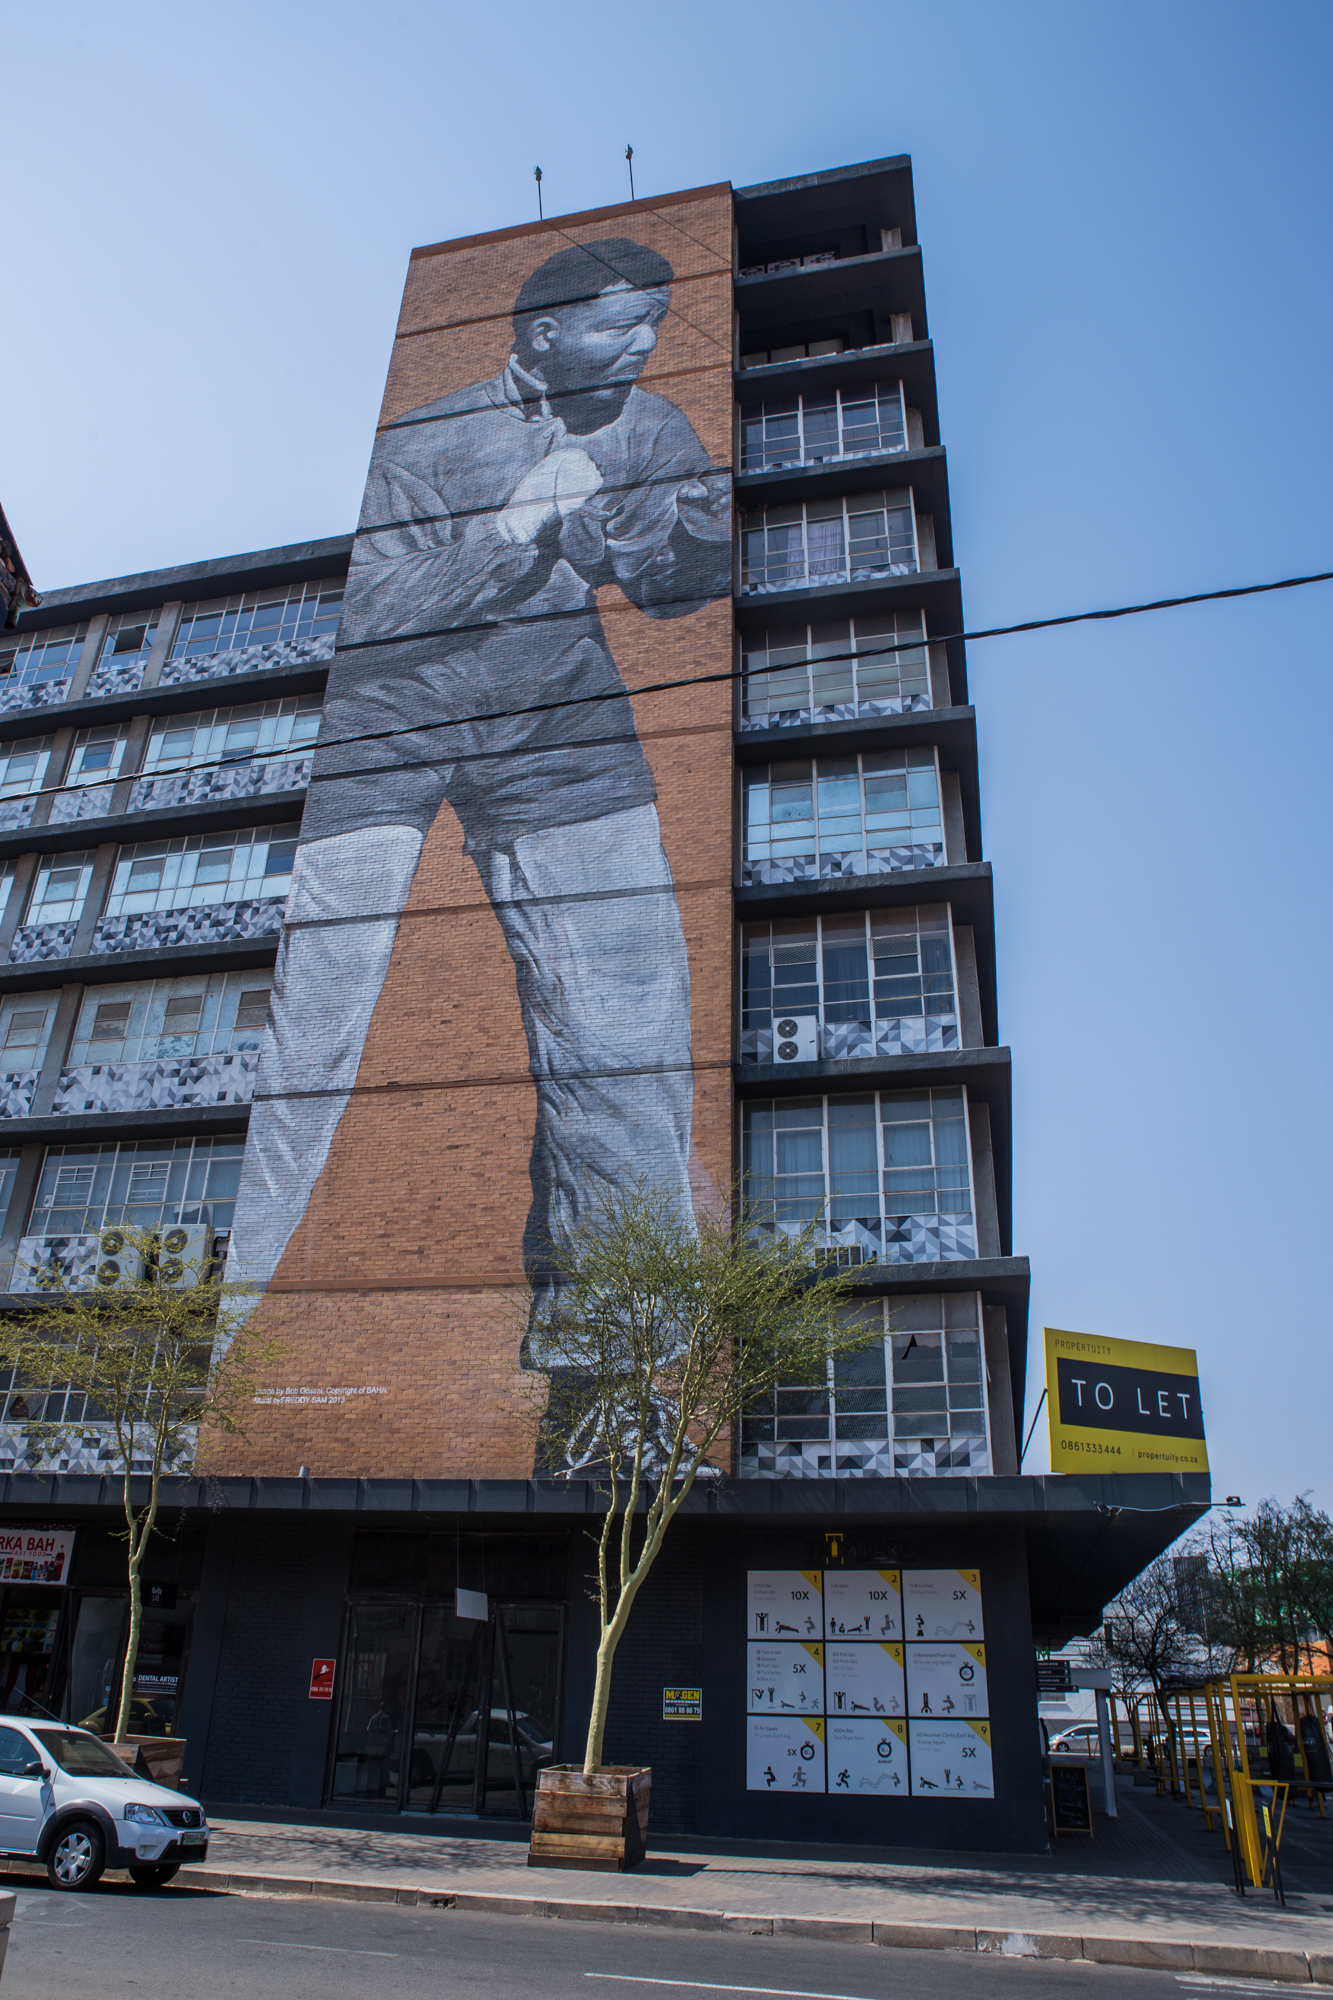 PAINTED BUILDING JHB CBD MANDELA